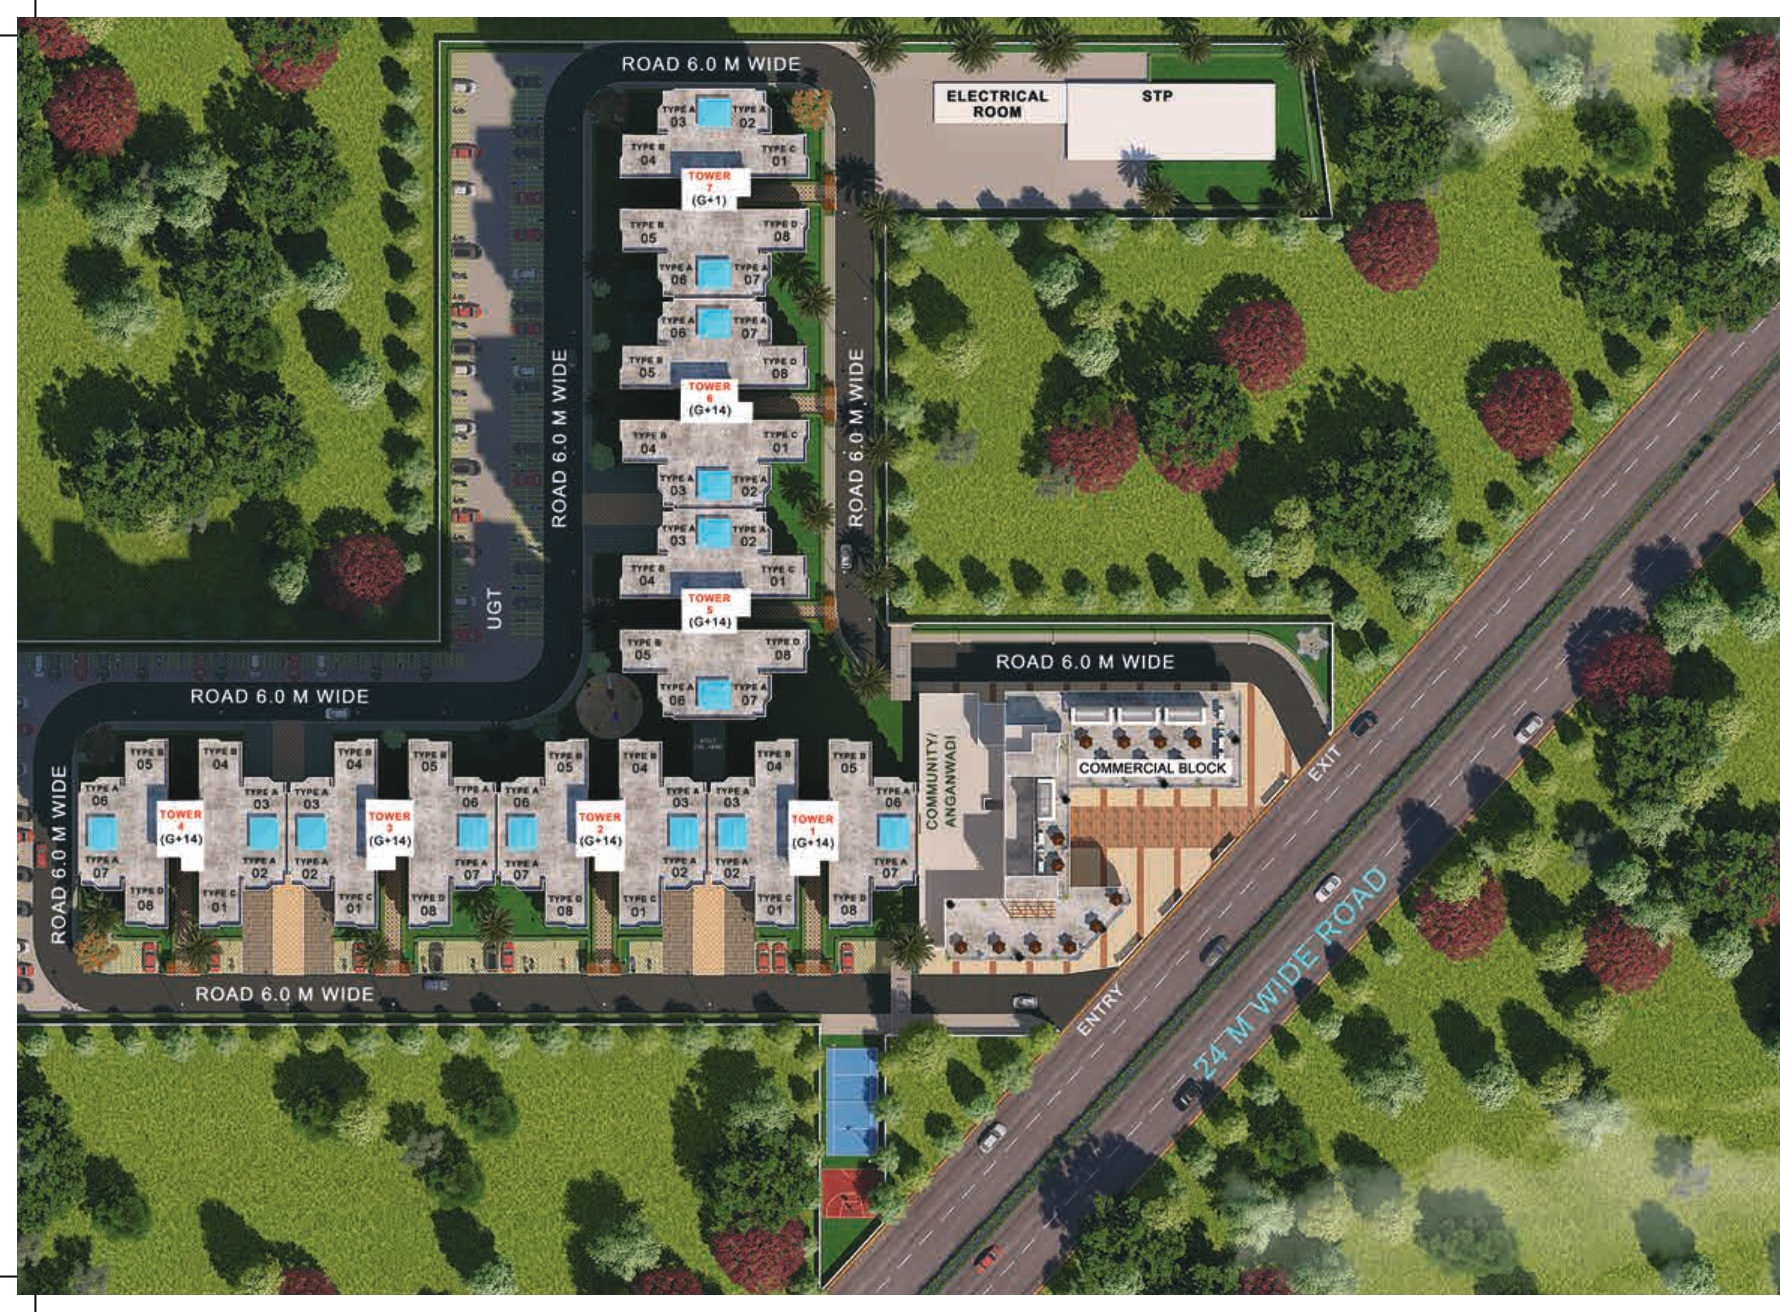 Site Layout Pyramid Pride Sector 76 Gurgaon